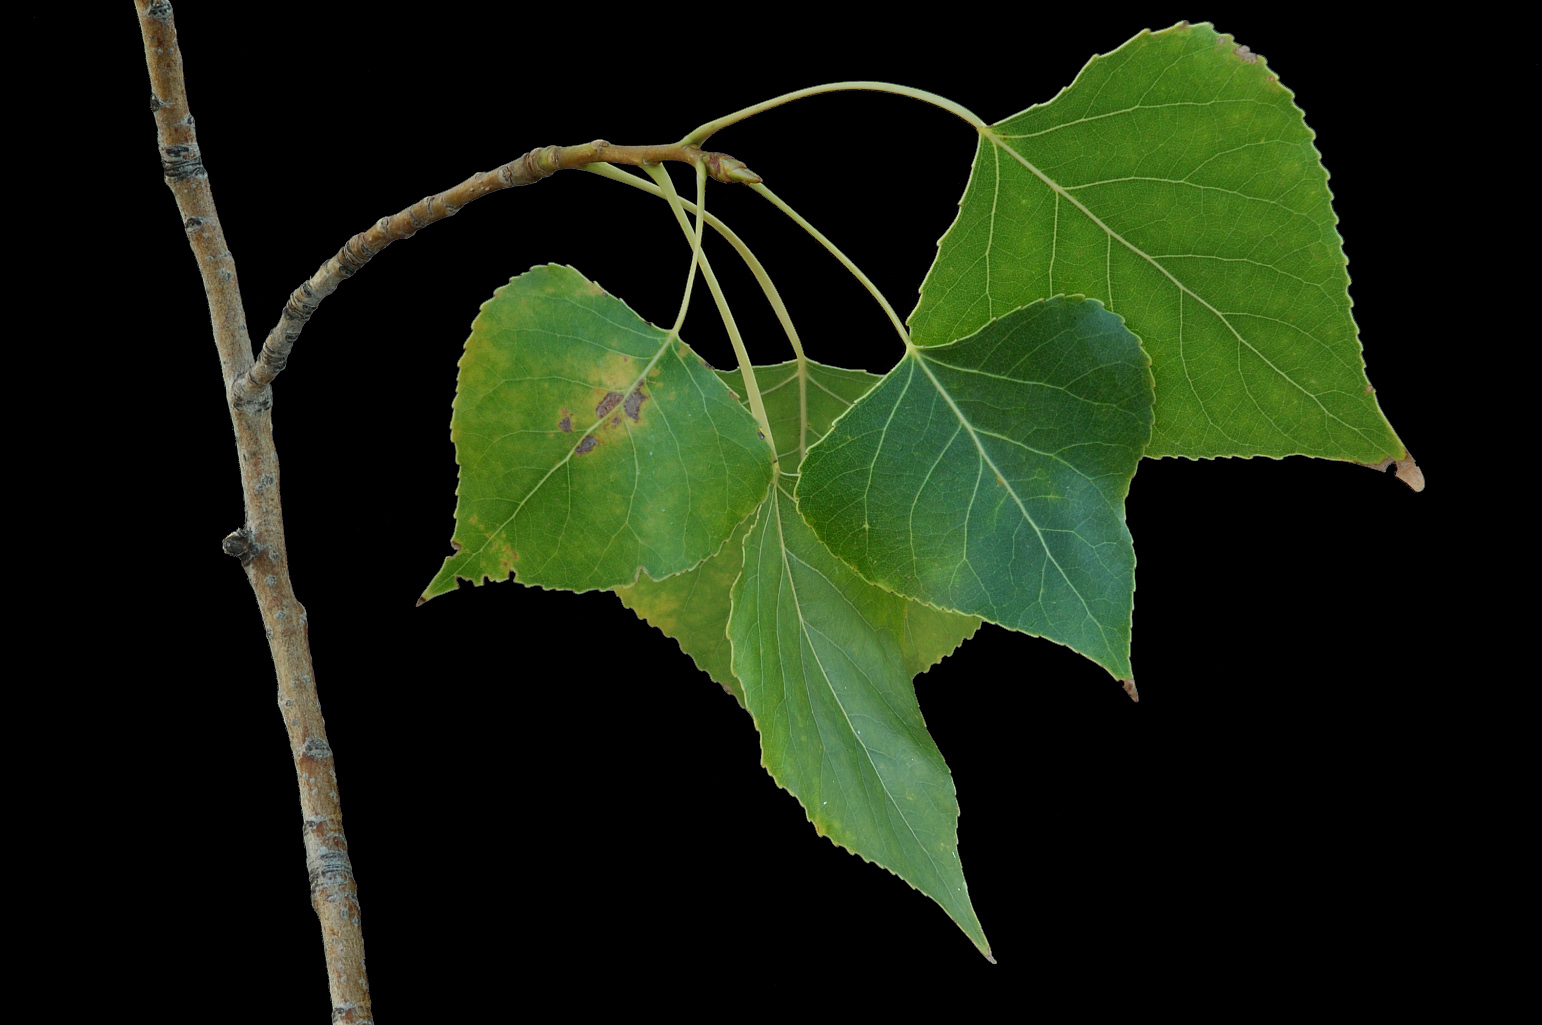 Branch with broadly ovate-deltate leaves with a truncate base and translucent margins; the petiole is long and flattened